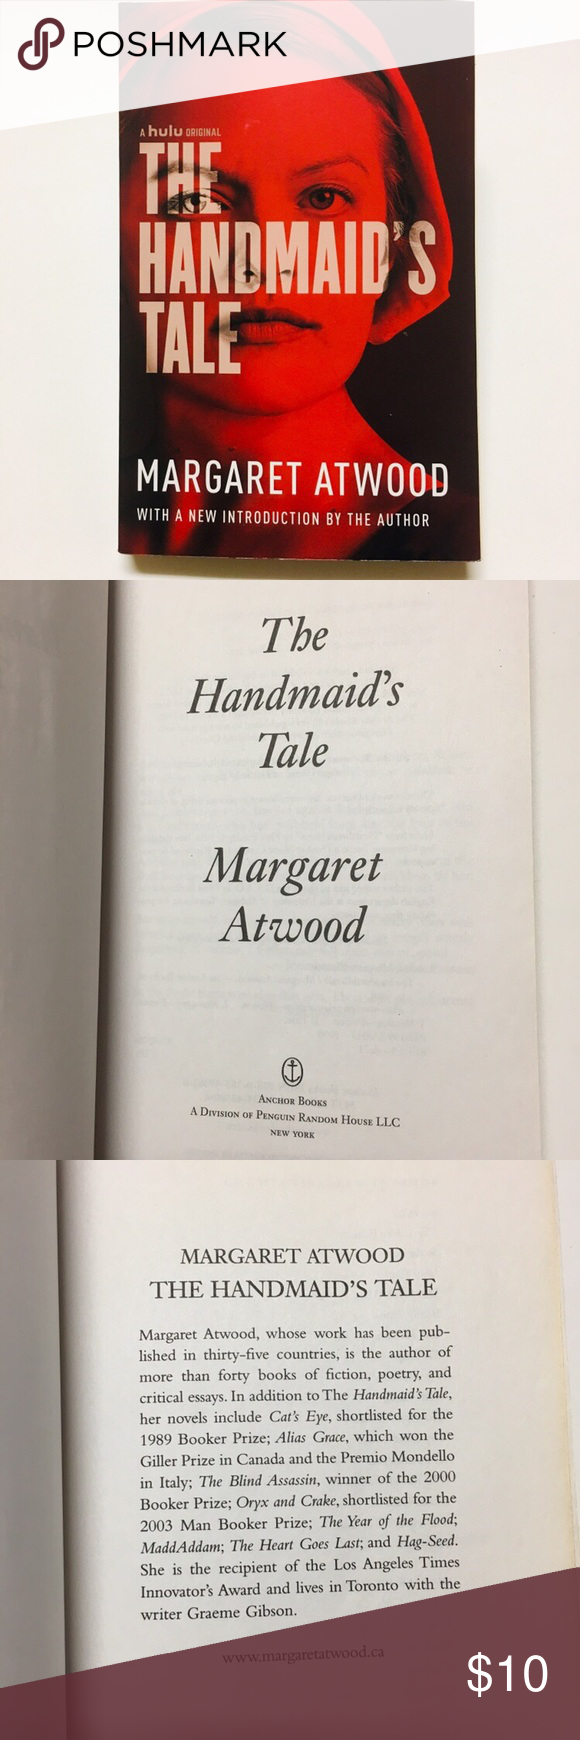 """The Handmaid's Tale"" By Margaret Atwood The Handmaid's Tale"" by Margaret Atwood. Paperback. Good used condition. Please see all photos for further details. Feel free to message with any questions. Thank you!   ""The Handmaid's Tale (1985) is a work of speculative fiction by Canadian author Margaret Atwood. Set in a near-future New England, in a totalitarian theocracy which has overthrown the United States government, the dystopian novel explores themes of women in subjugation and the #margaretatwood"